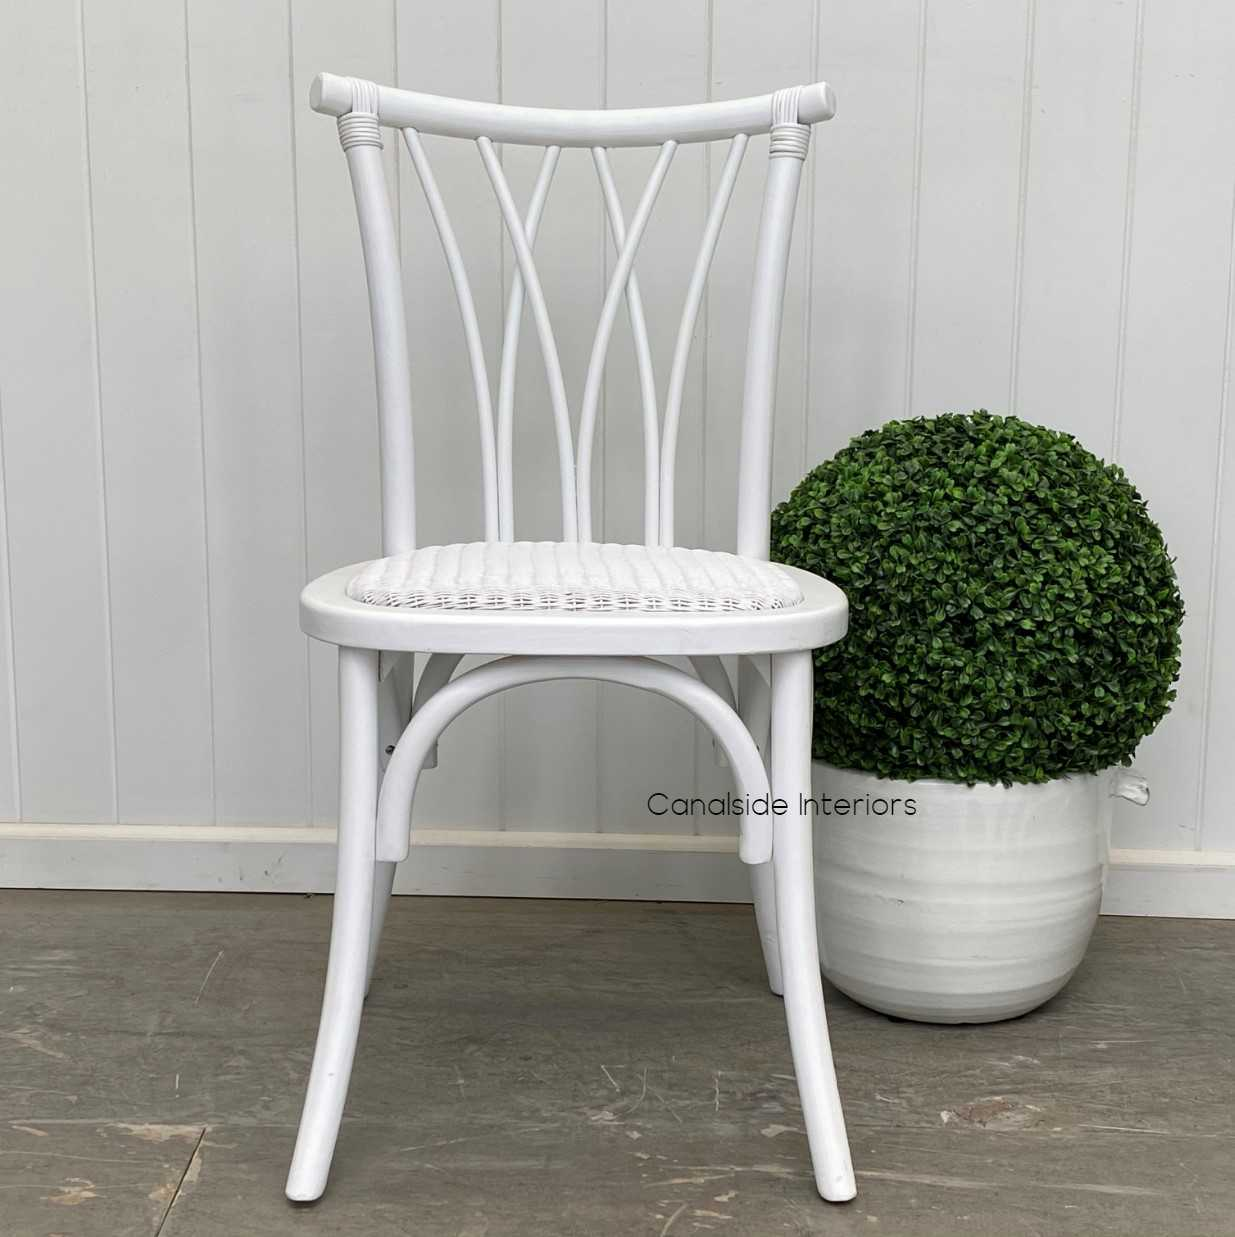 Botanica Chair Distressed White Dining, CHAIRS, CAFE FURNITURE, HAMPTONS Style, PLANTATION Style, CHAIRS Dining, CAFE FURNITURE Stools & Chairs, PLANTATION STYLE